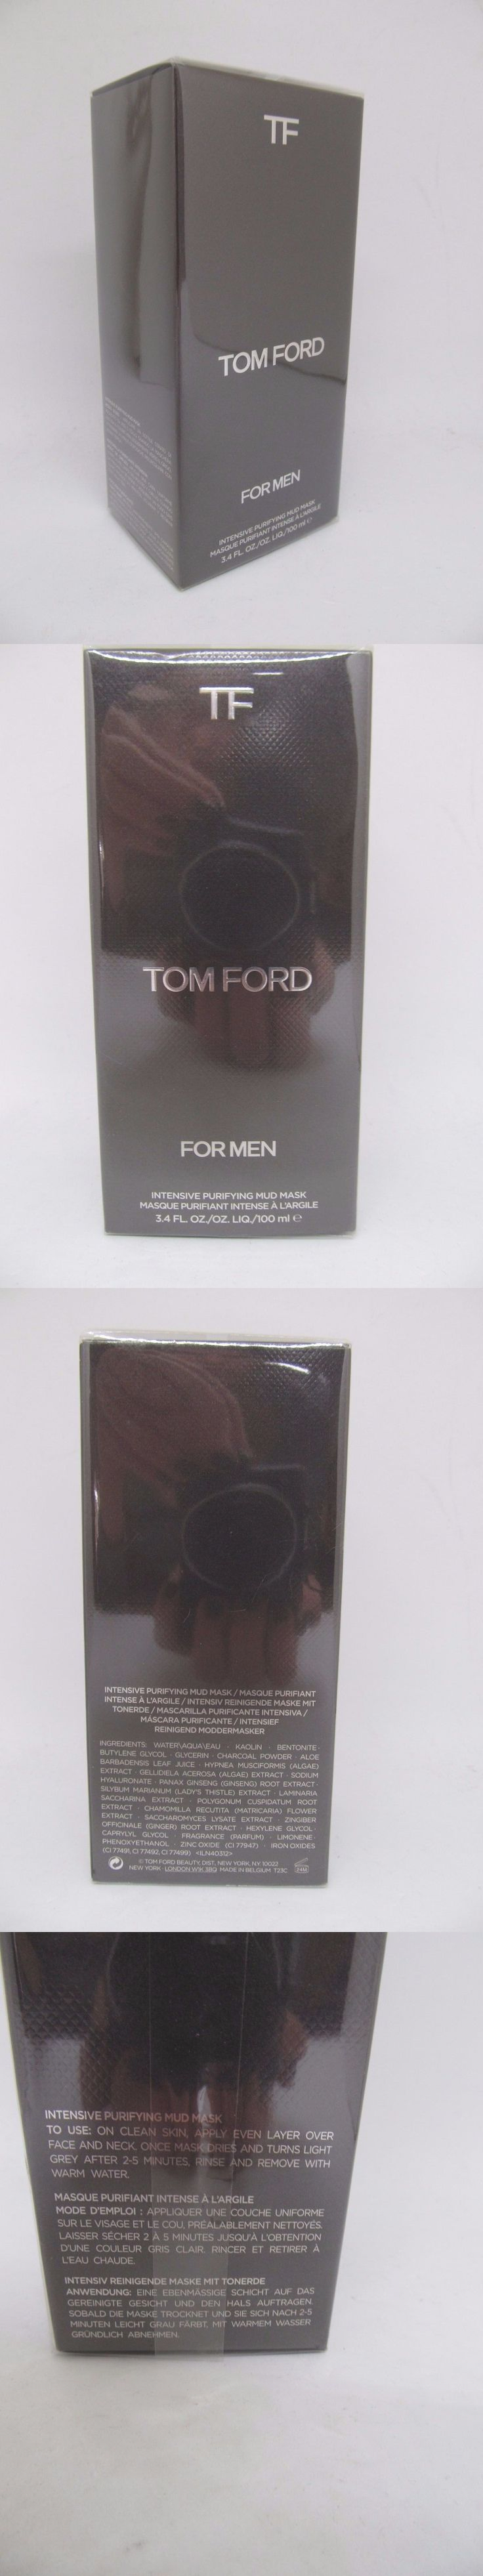 Aftershave and Pre-Shave: Tom Ford For Men Intensive Purifying Mud Mask 3.4 Fl. Oz. 100 Ml Nib -> BUY IT NOW ONLY: $43.59 on eBay!